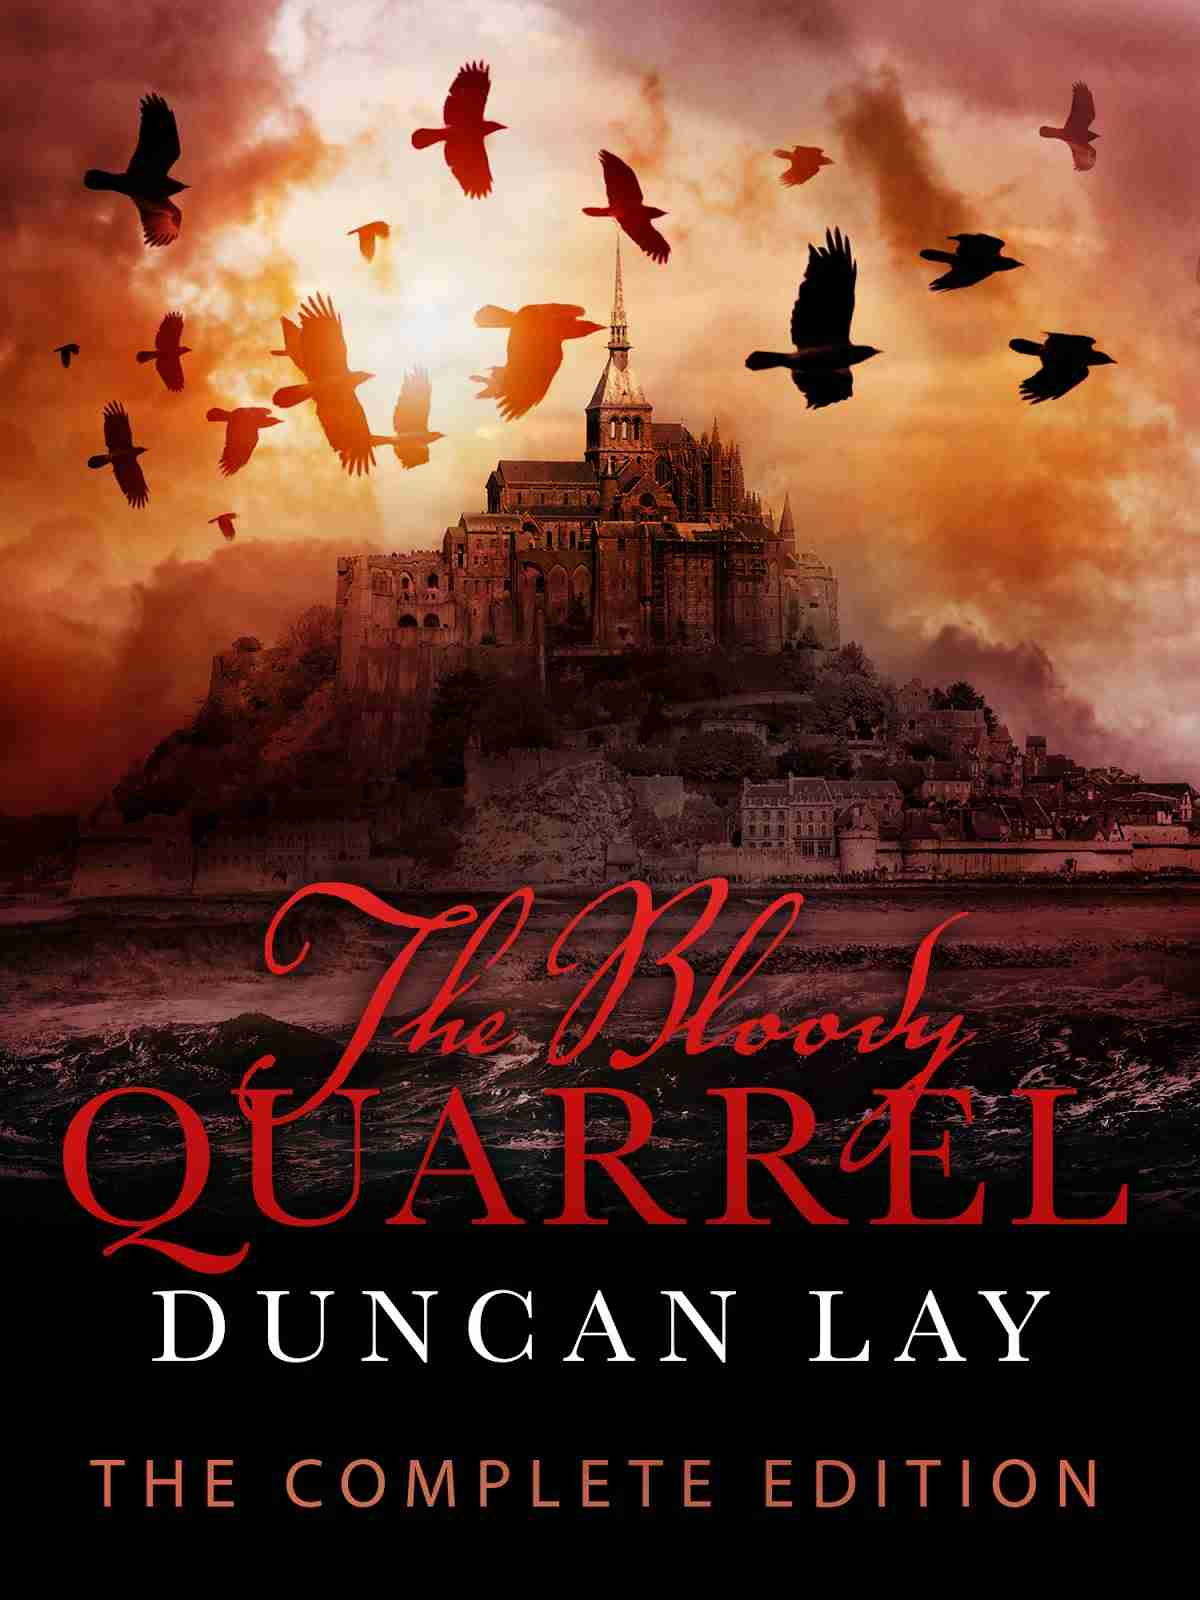 The Bloody Quarrel by Duncan Lay